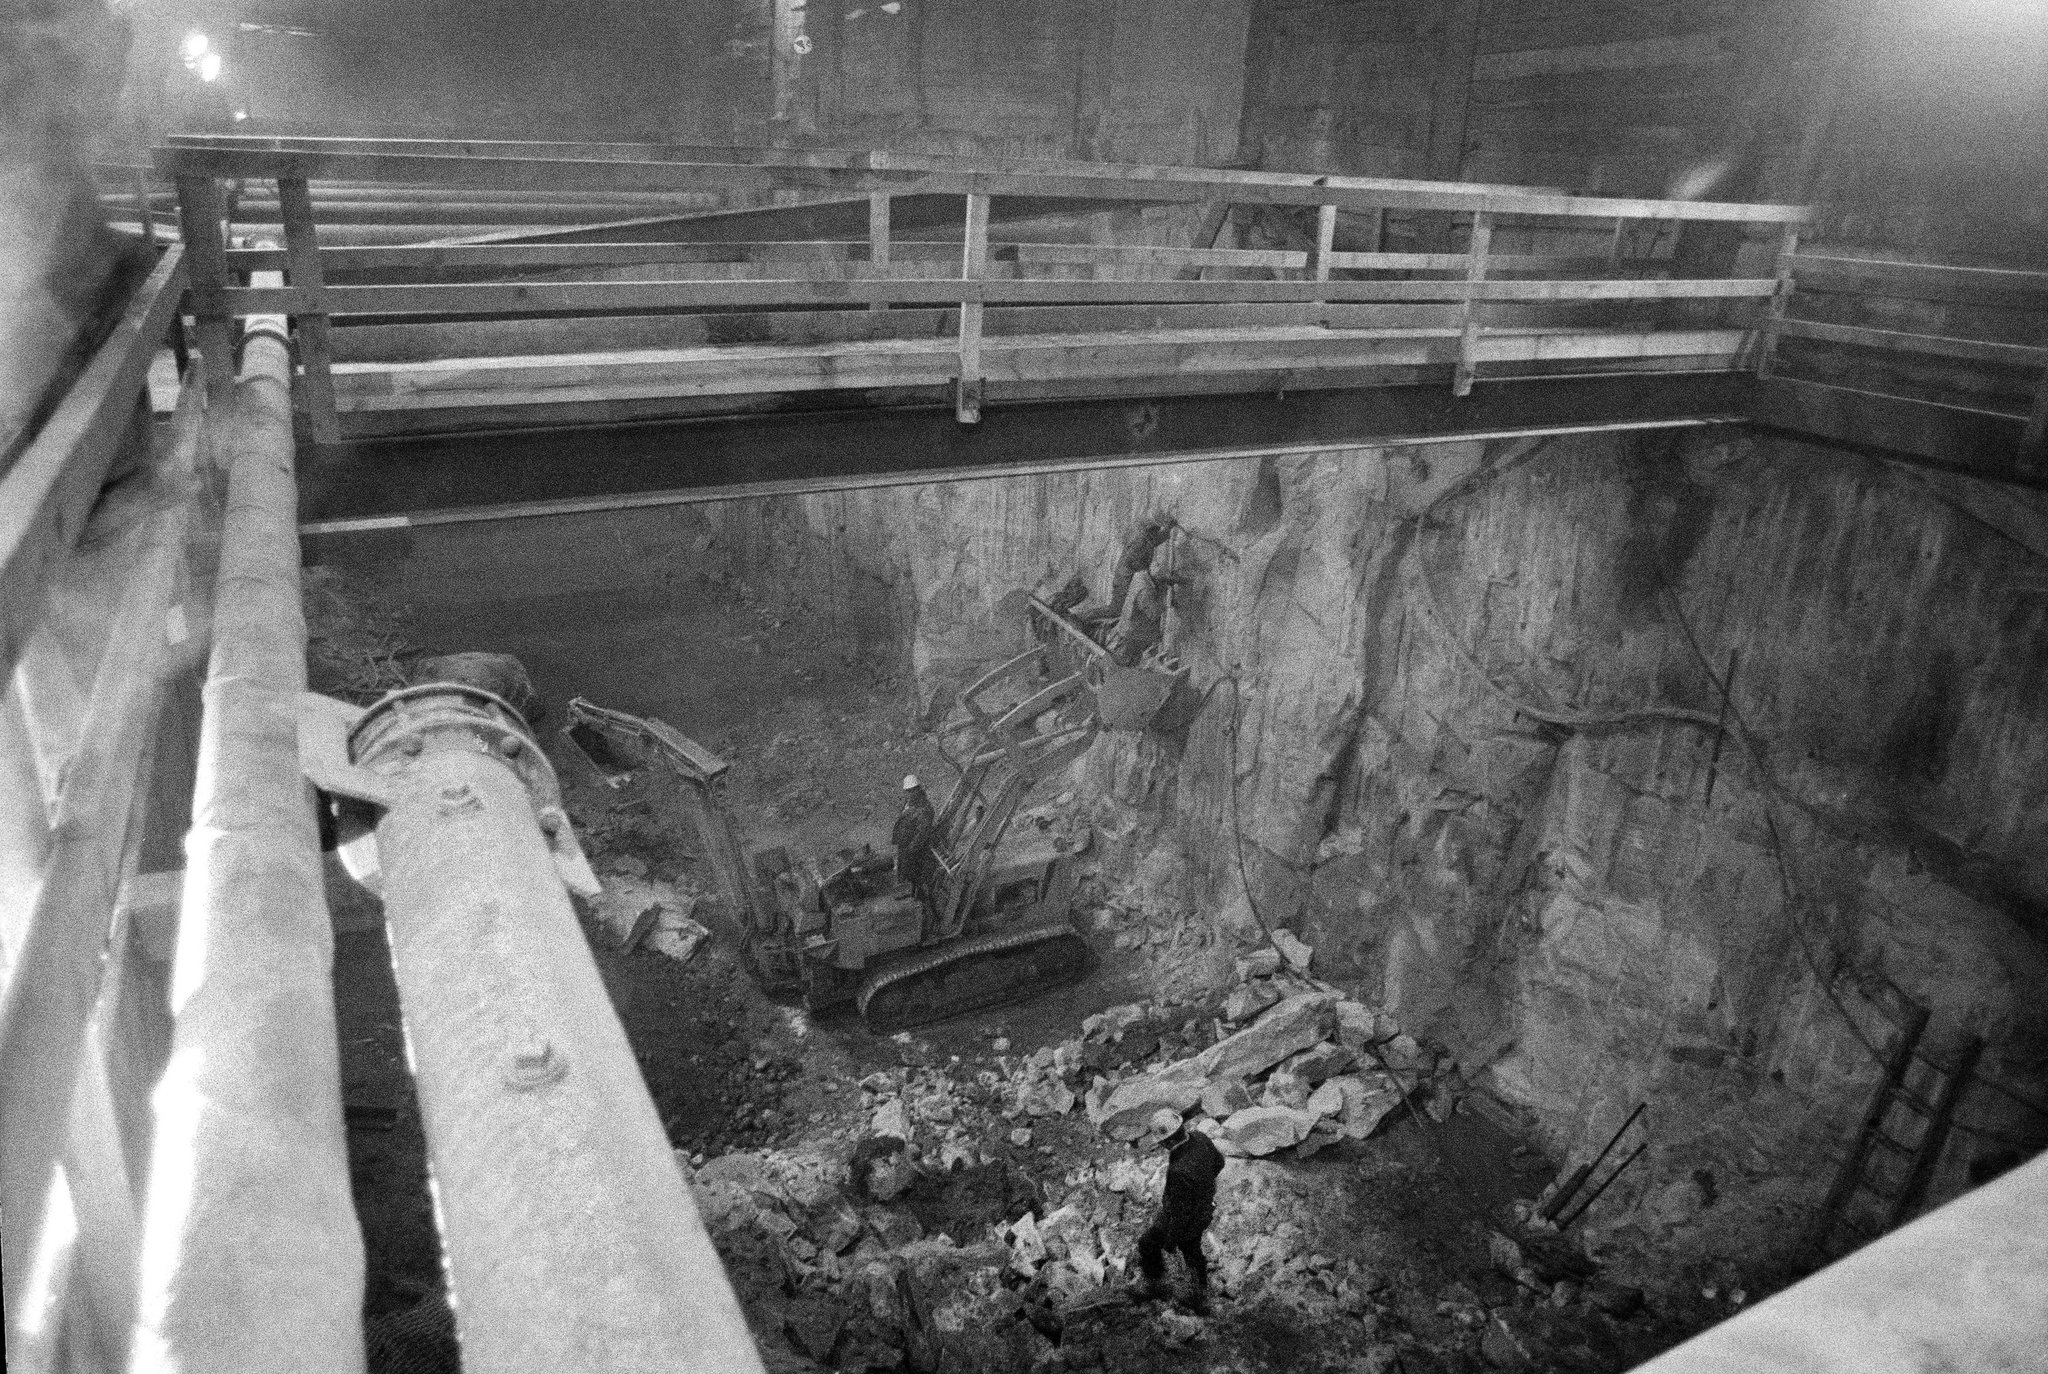 Construction on the Second Avenue subway in 1974.CREDIT: MEYER LIEBOWITZ/THE NEW YORK TIMES